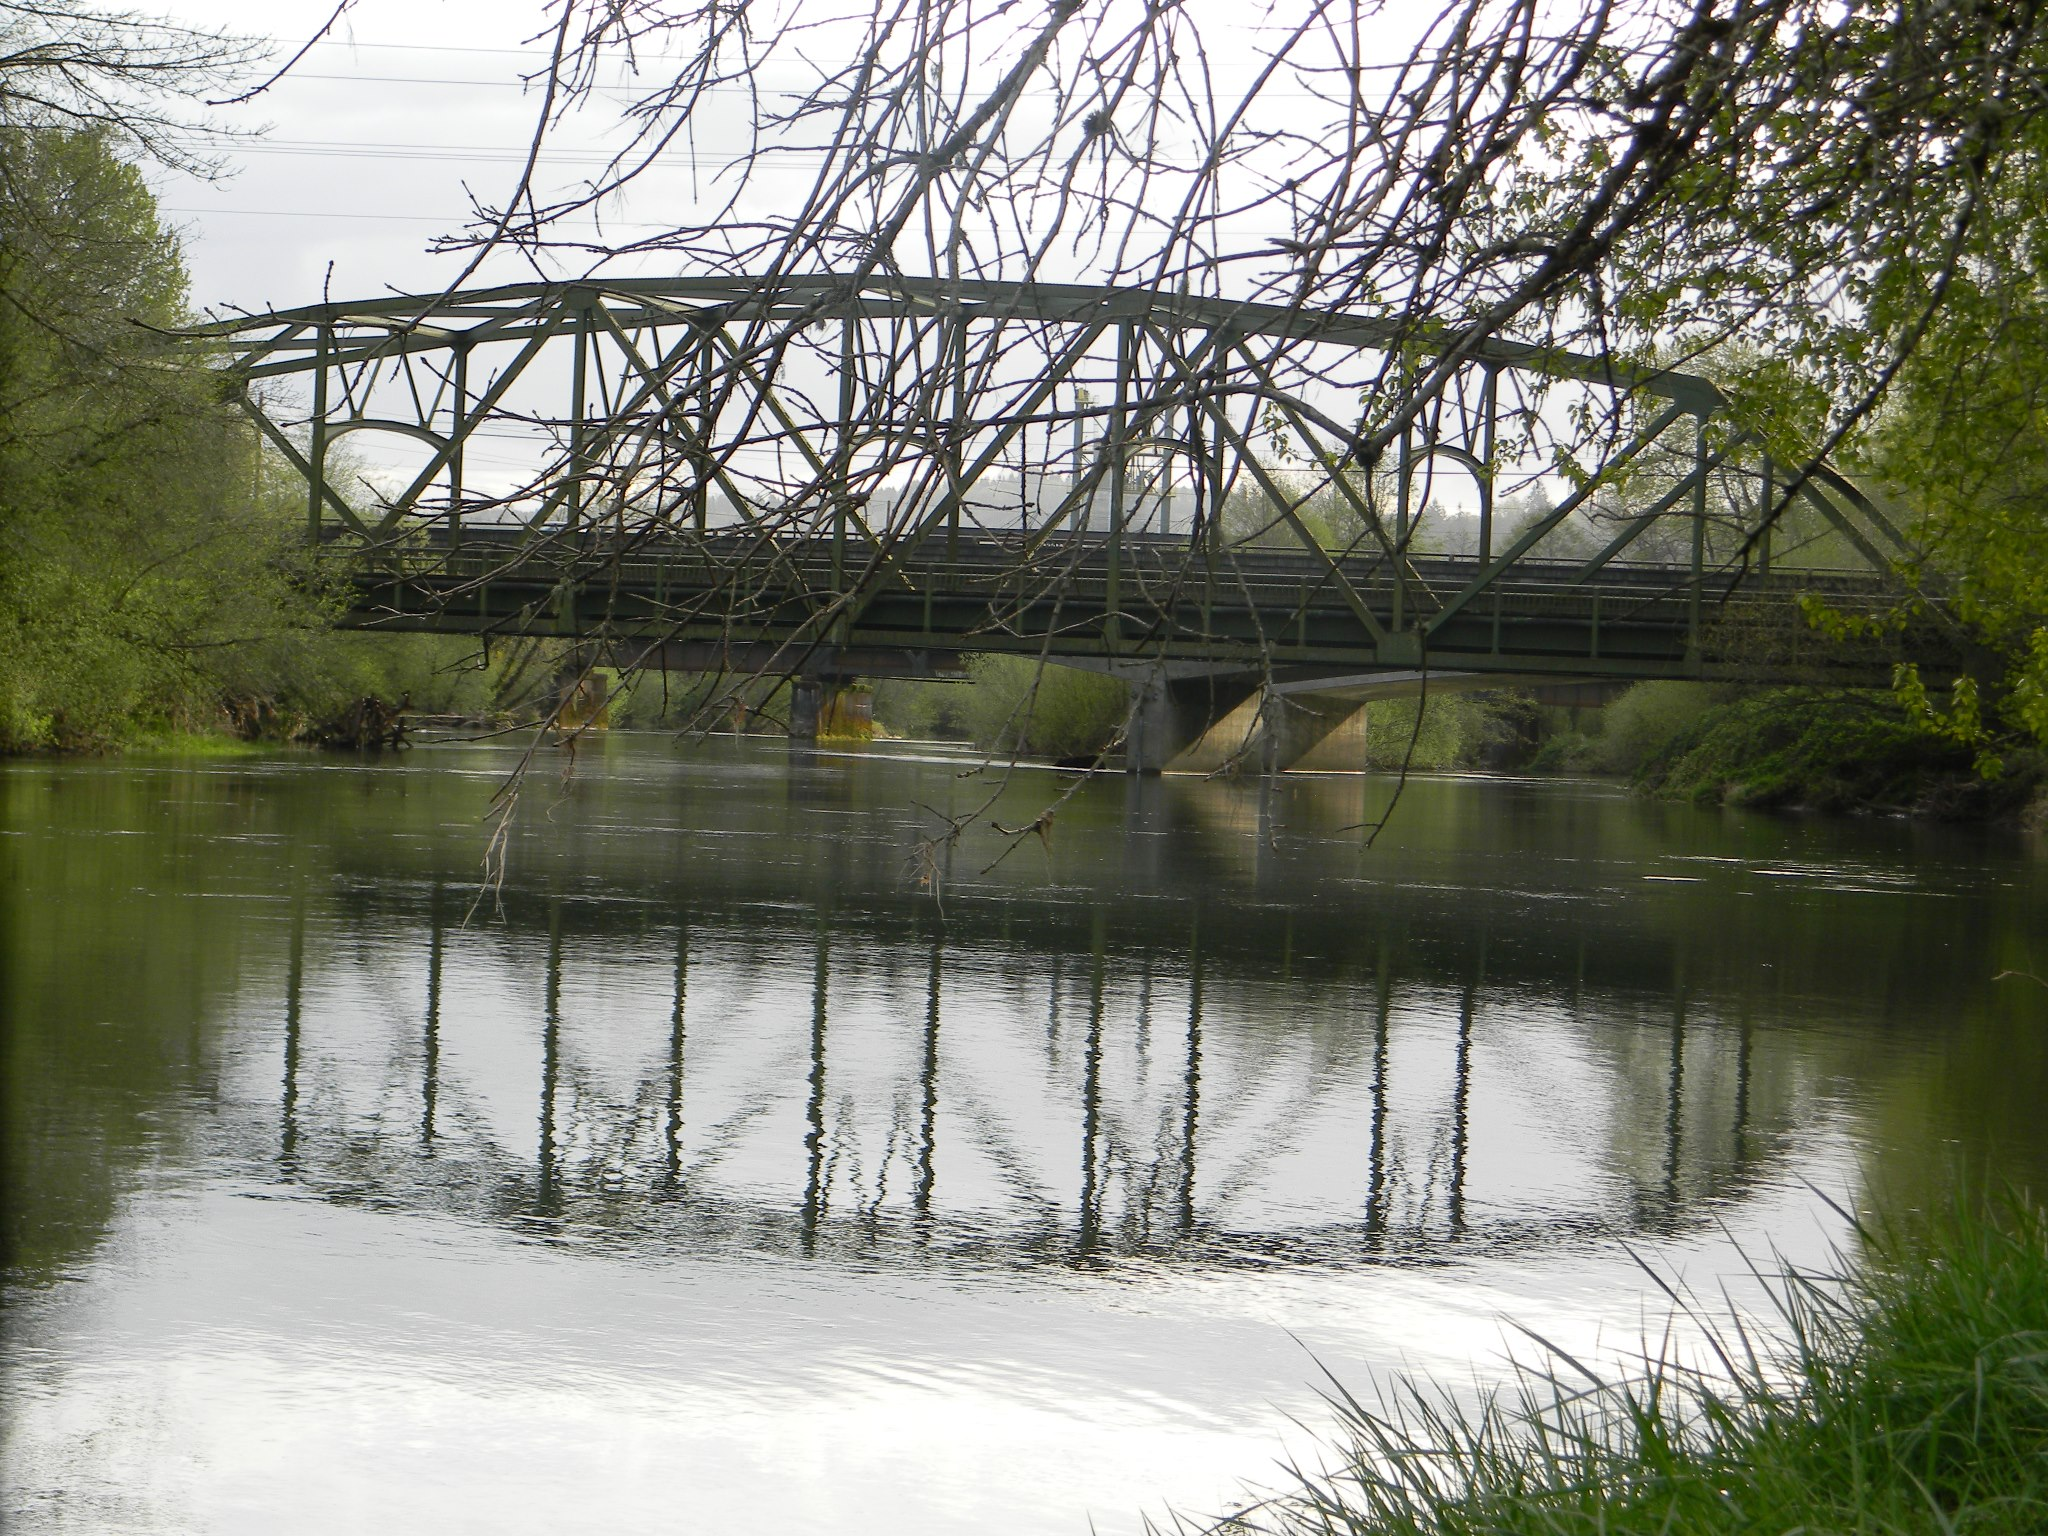 Camp Ground Bridge